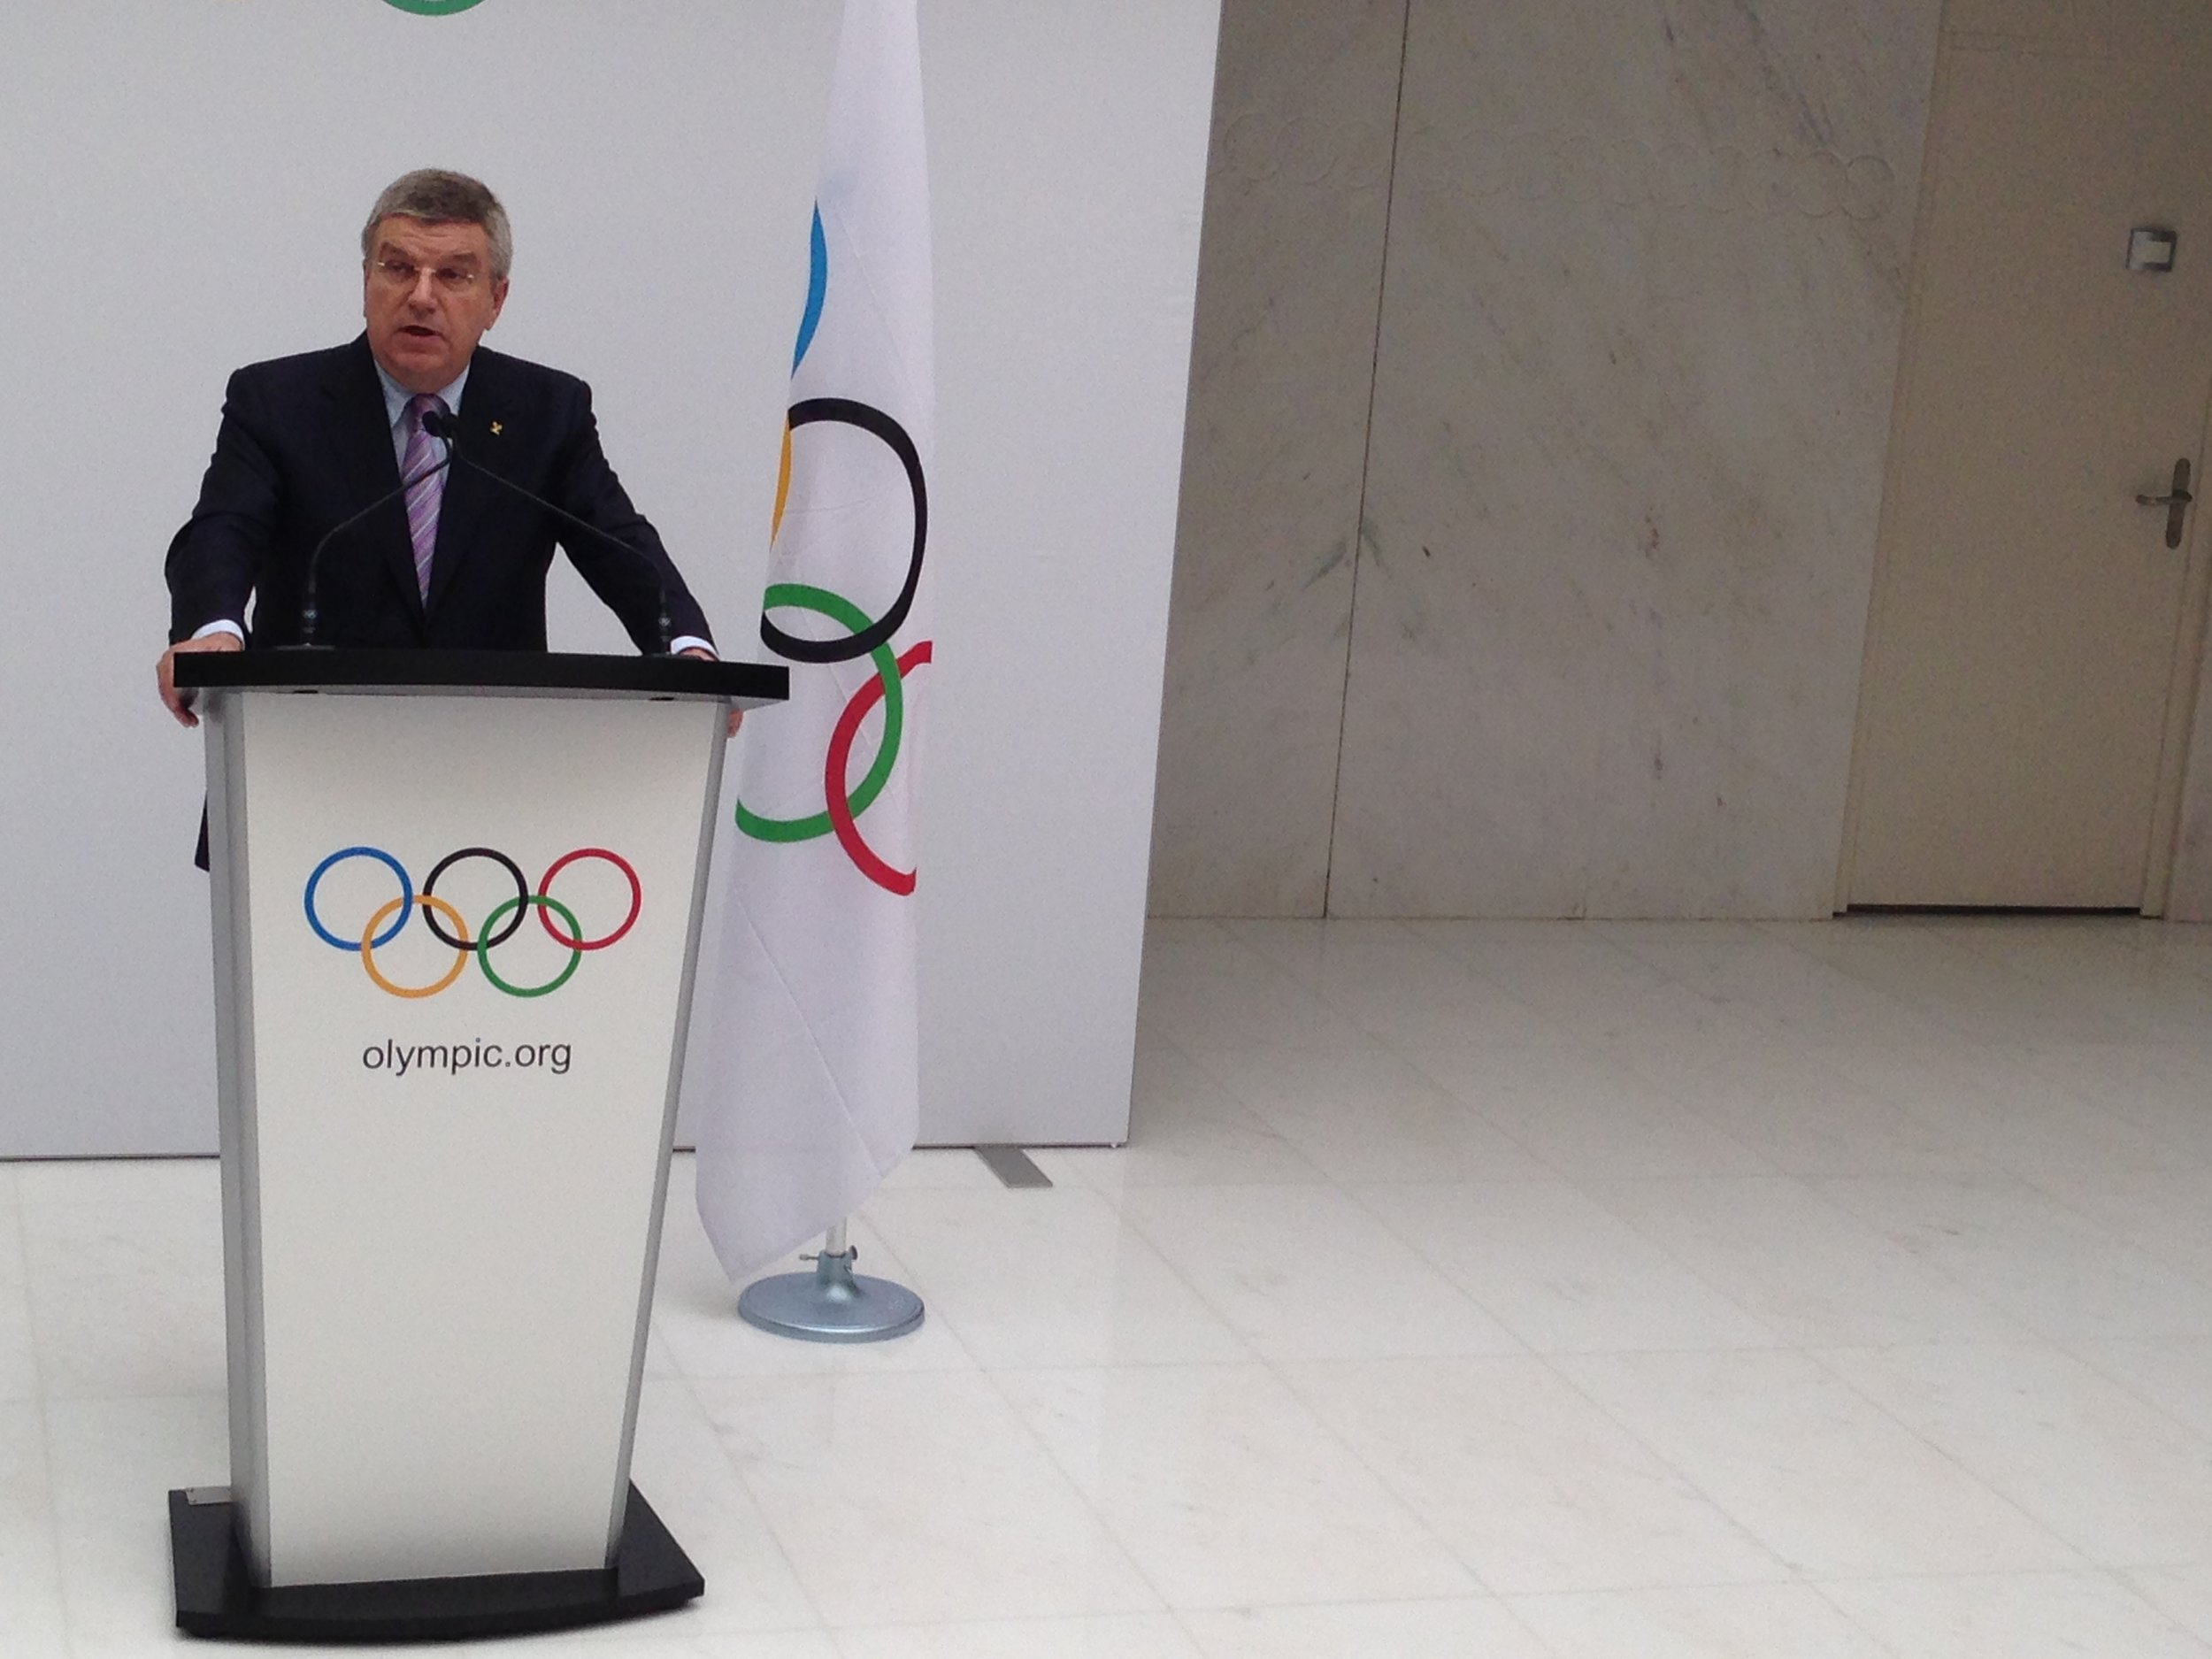 IOC President Thomas Bach announcing the three 2022 candidate cities